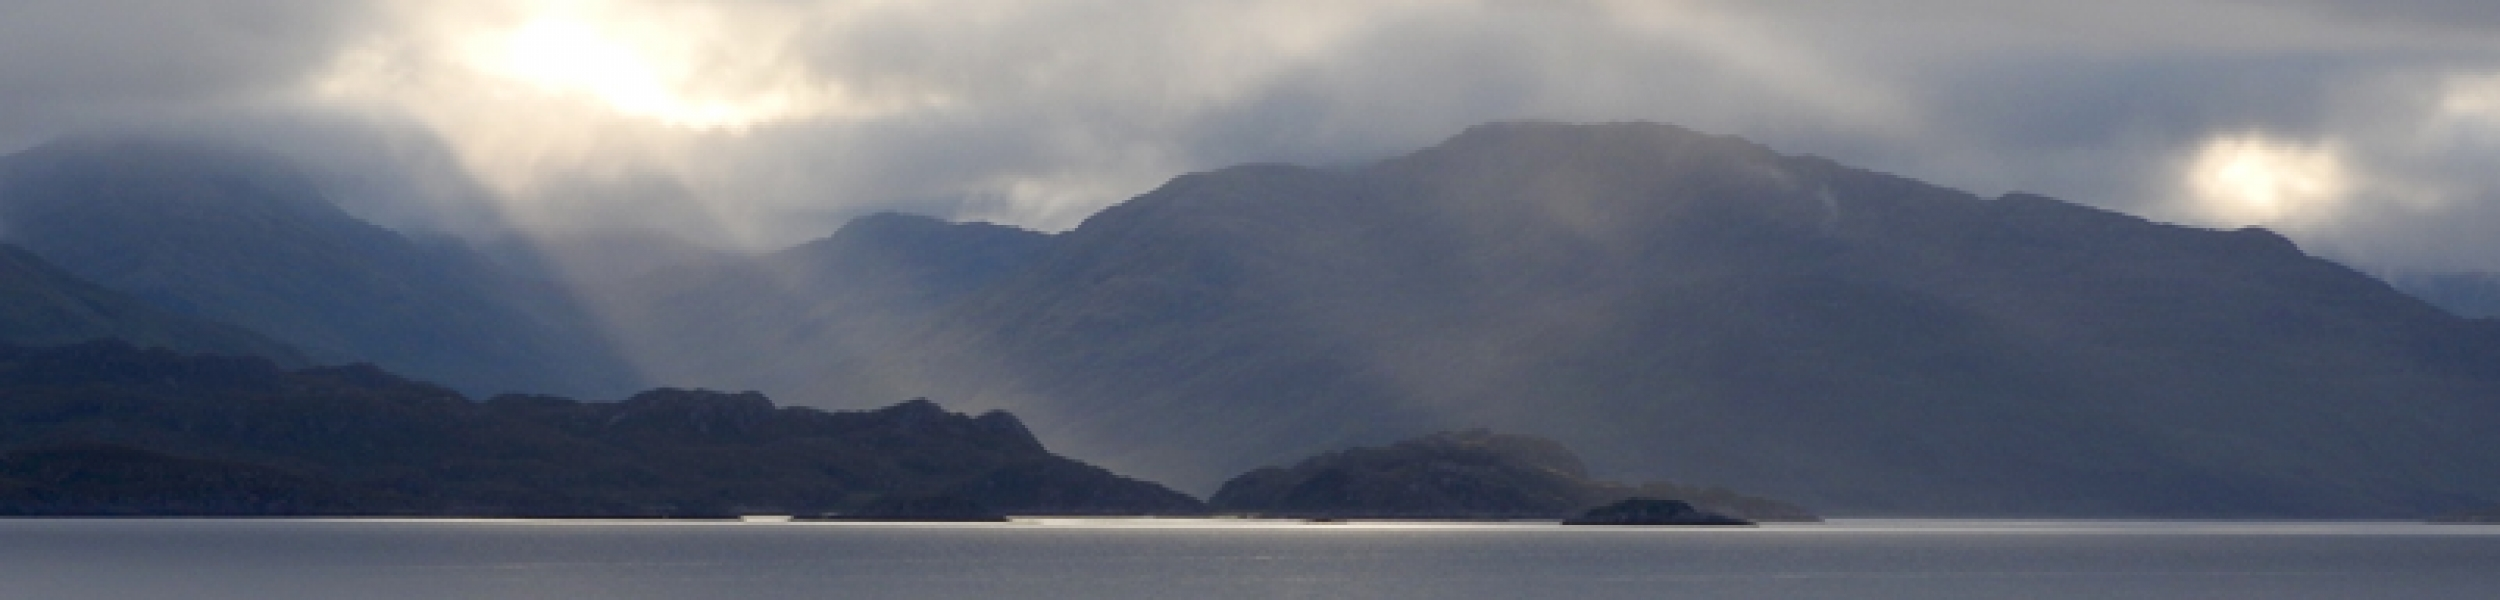 KnoydART Bed and Breakfast Skye view